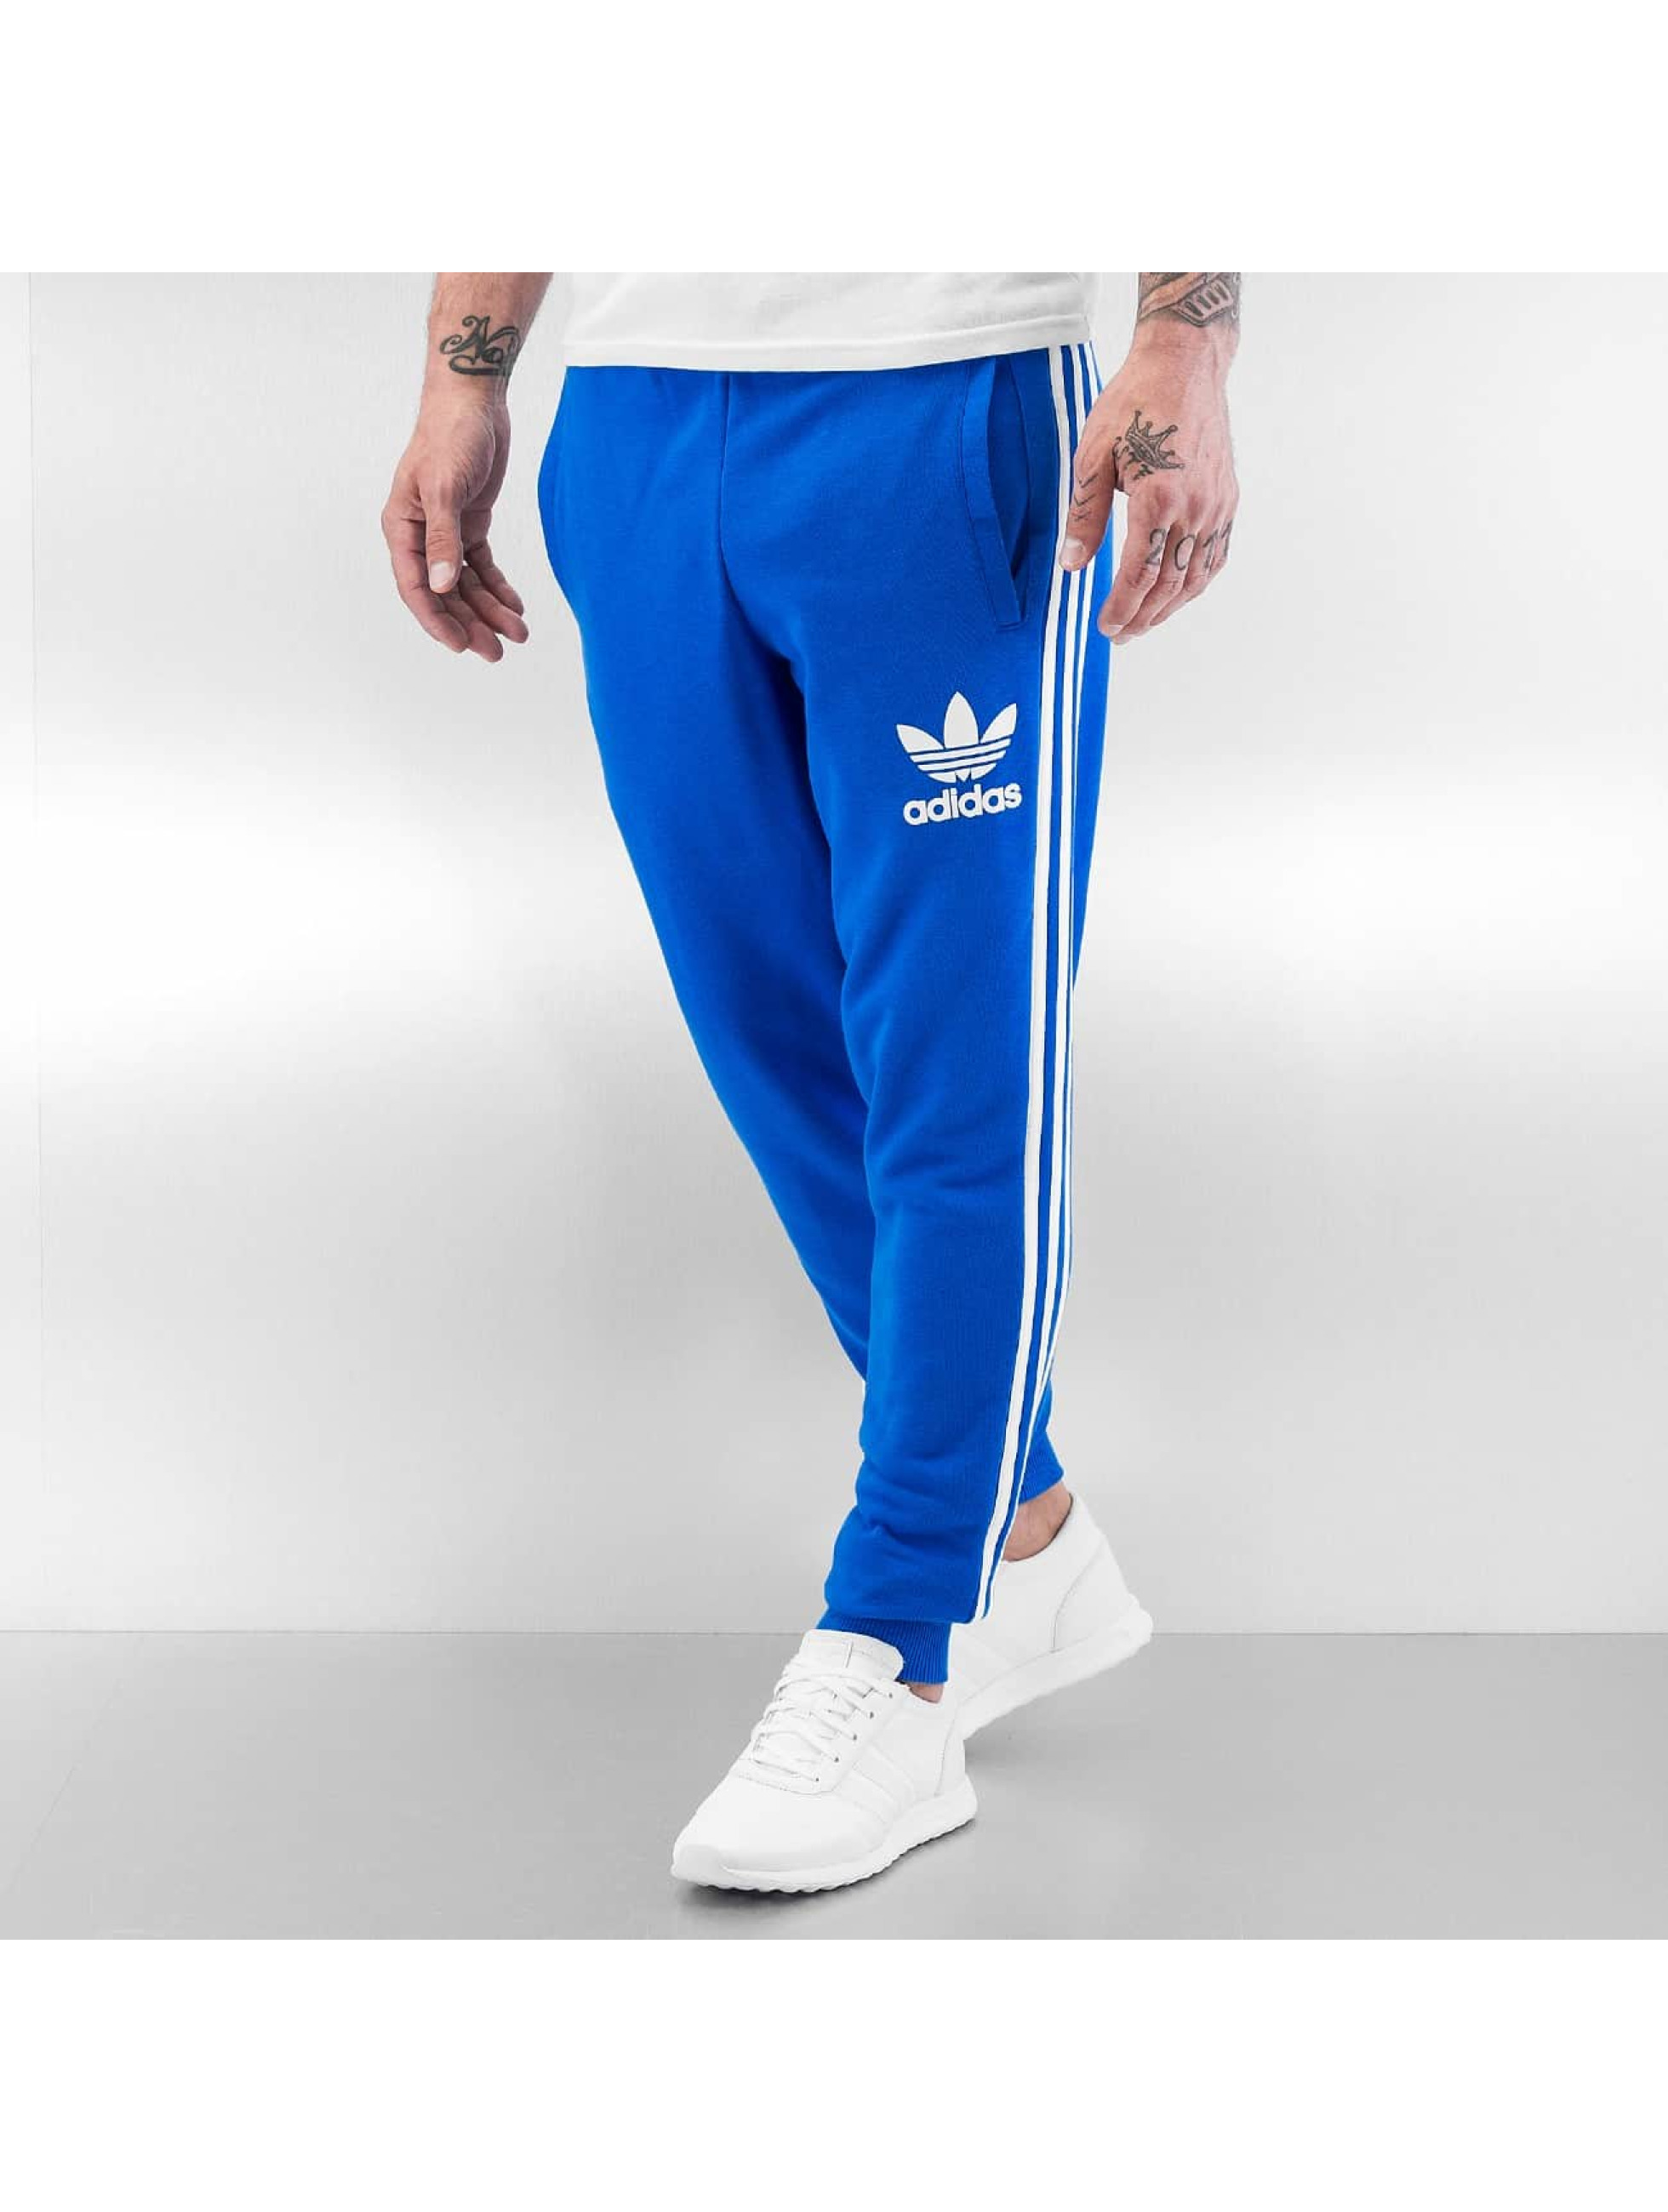 adidas jogginghose clfn cuffed french terry in blau 261714. Black Bedroom Furniture Sets. Home Design Ideas